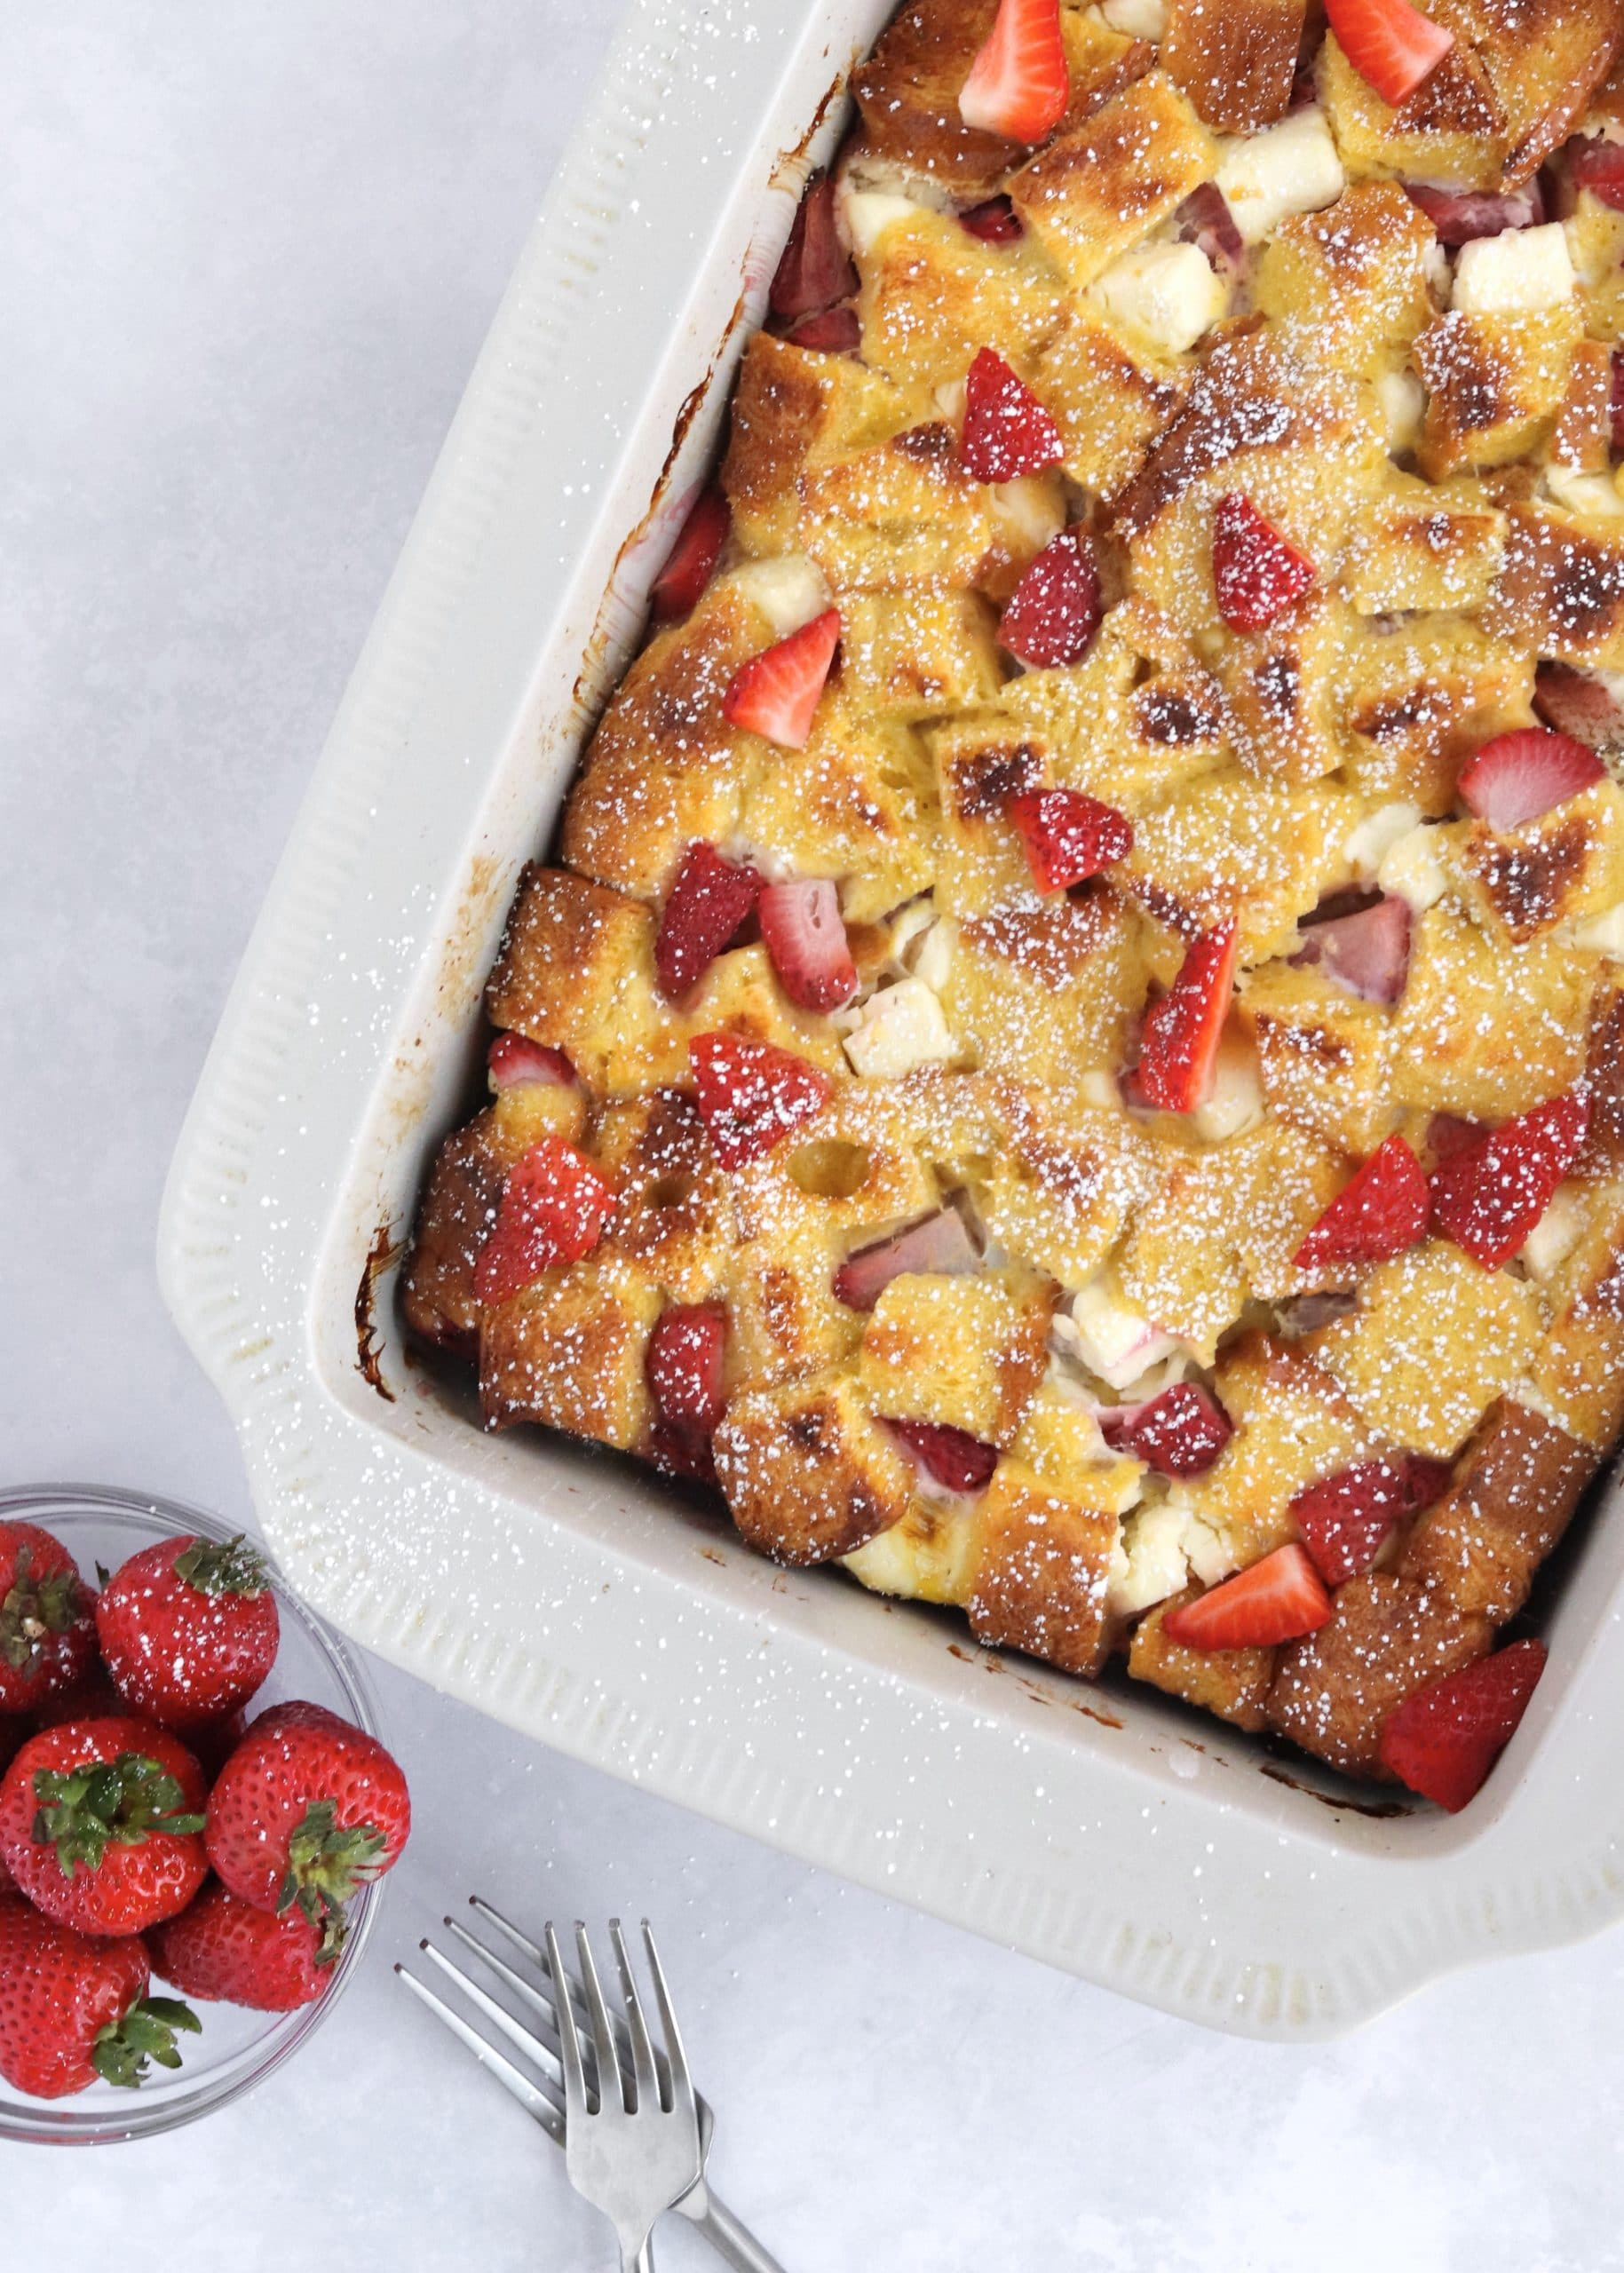 Strawberry overnight French toast bake